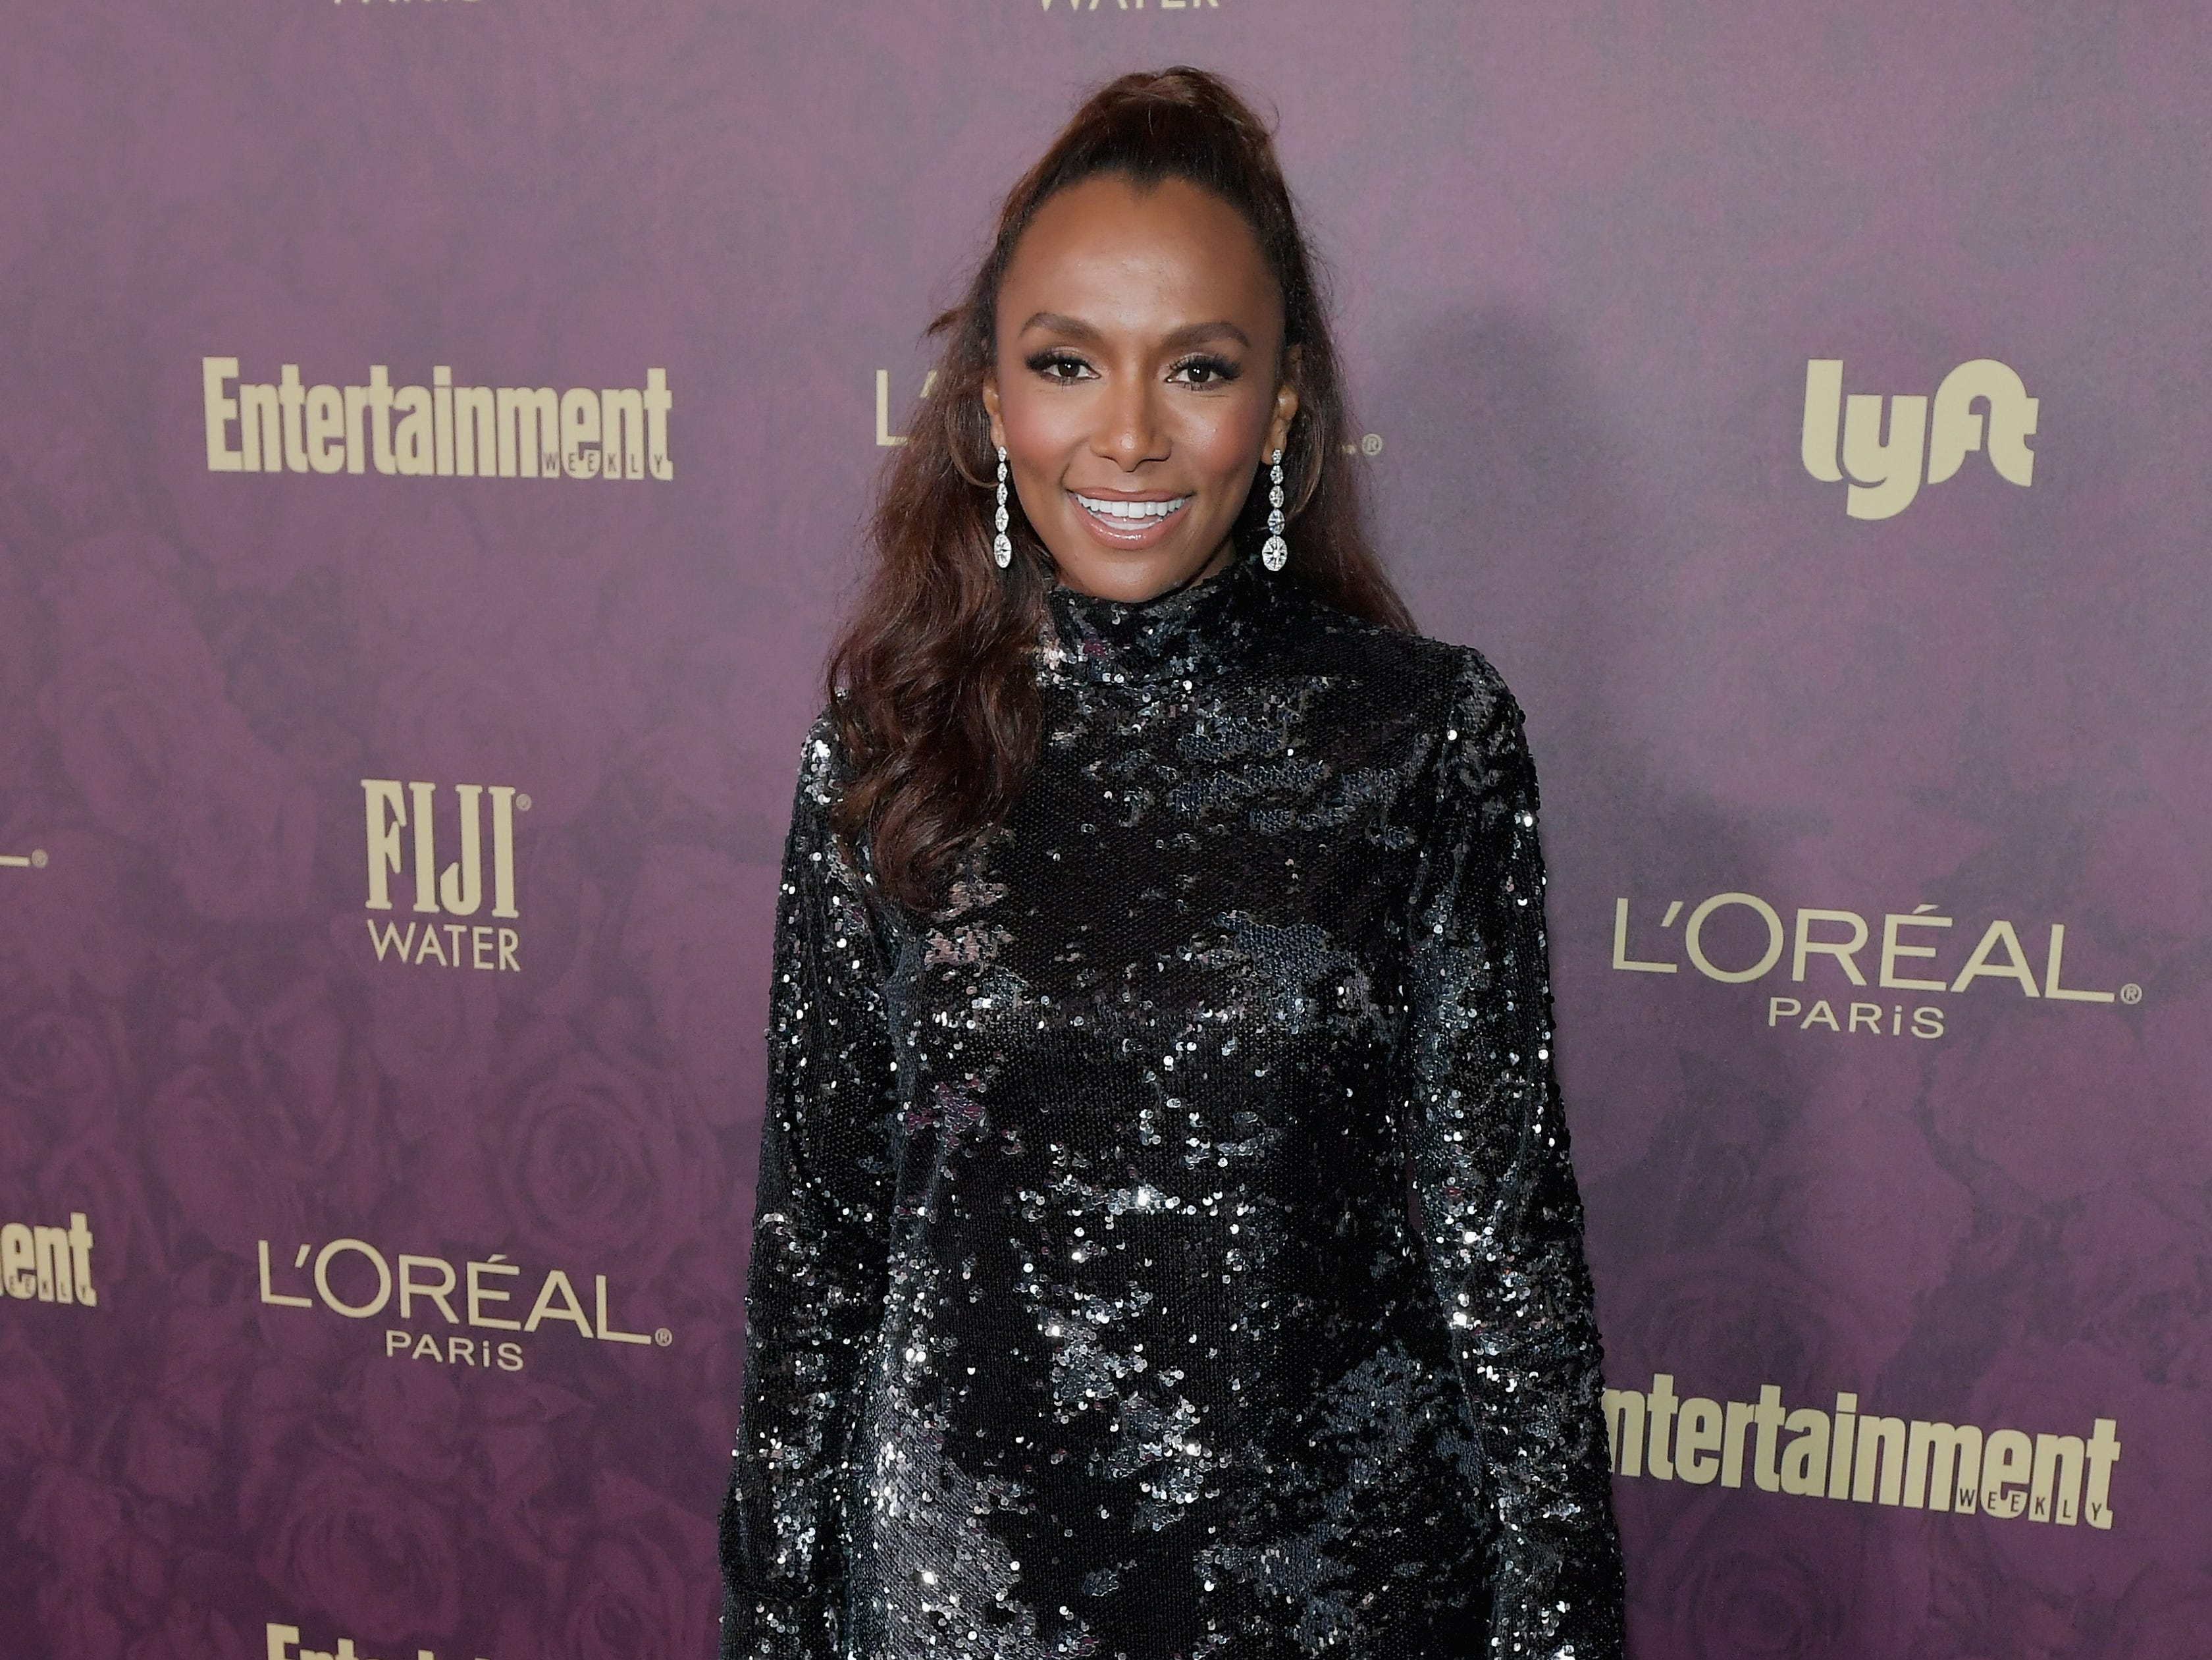 LOS ANGELES, CA - SEPTEMBER 15:  Janet Mock attends the 2018 Pre-Emmy Party hosted by Entertainment Weekly and L'Oreal Paris at Sunset Tower on September 15, 2018 in Los Angeles, California.  (Photo by Neilson Barnard/Getty Images for Entertainment Weekly) ORG XMIT: 775214113 ORIG FILE ID: 1033997840